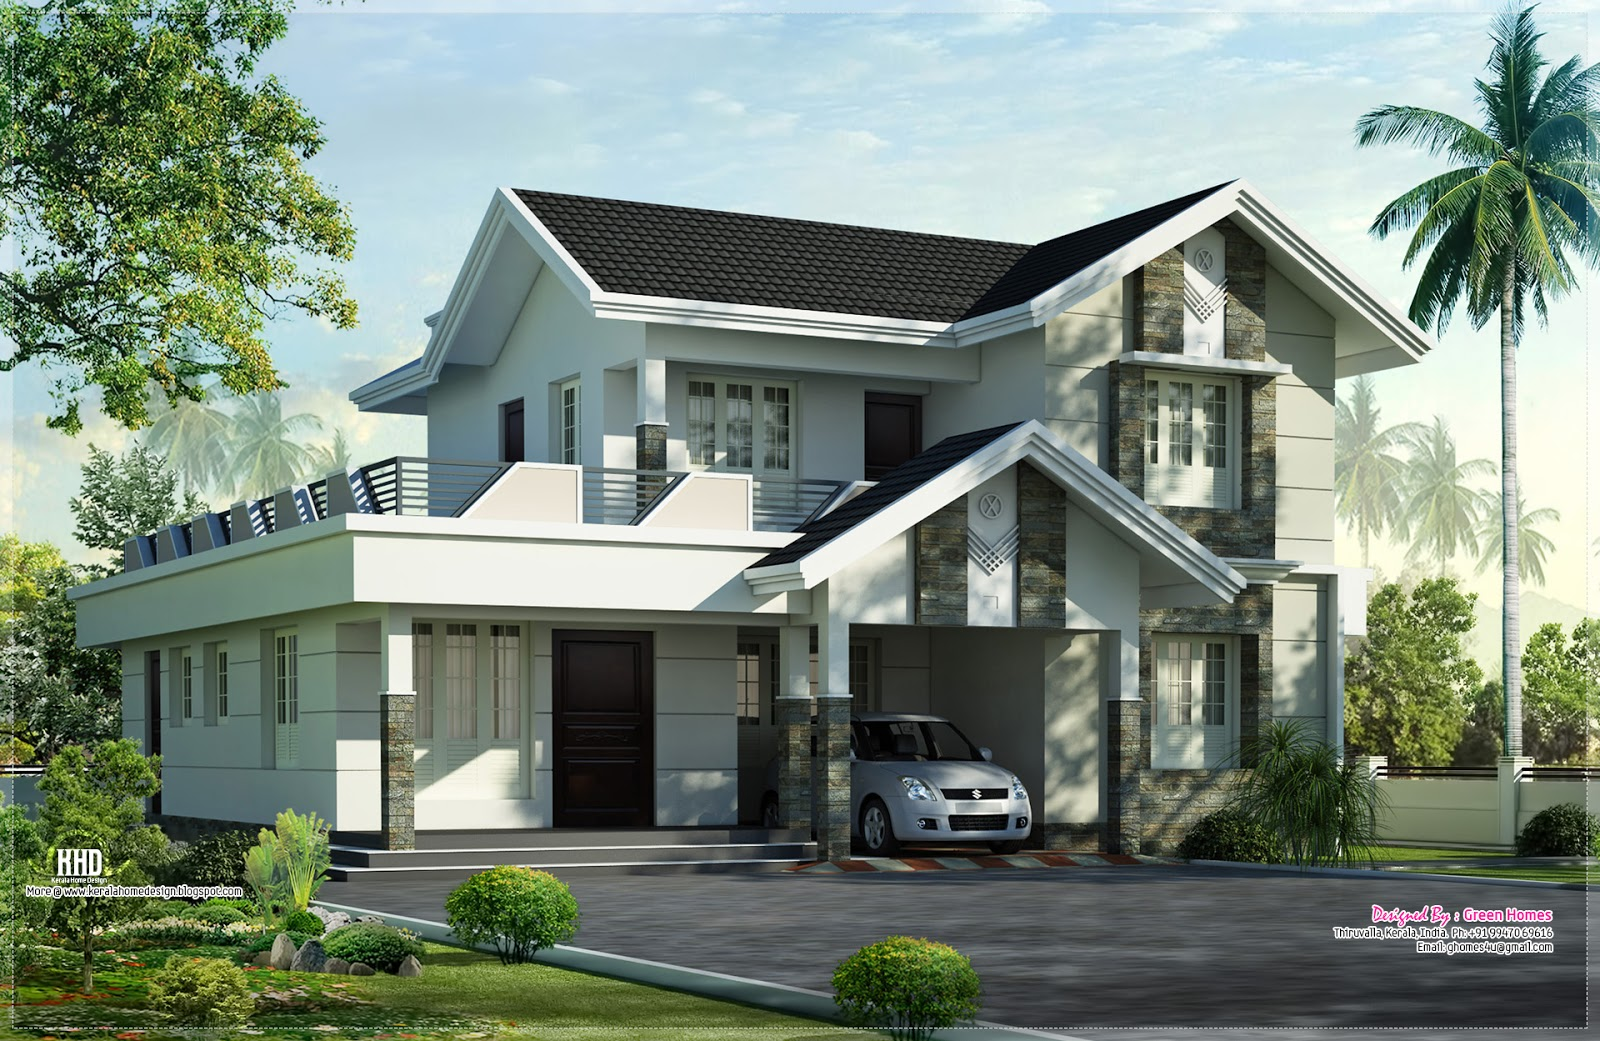 1975 Nice Home Exterior Design Kerala Home Design And Floor Plans